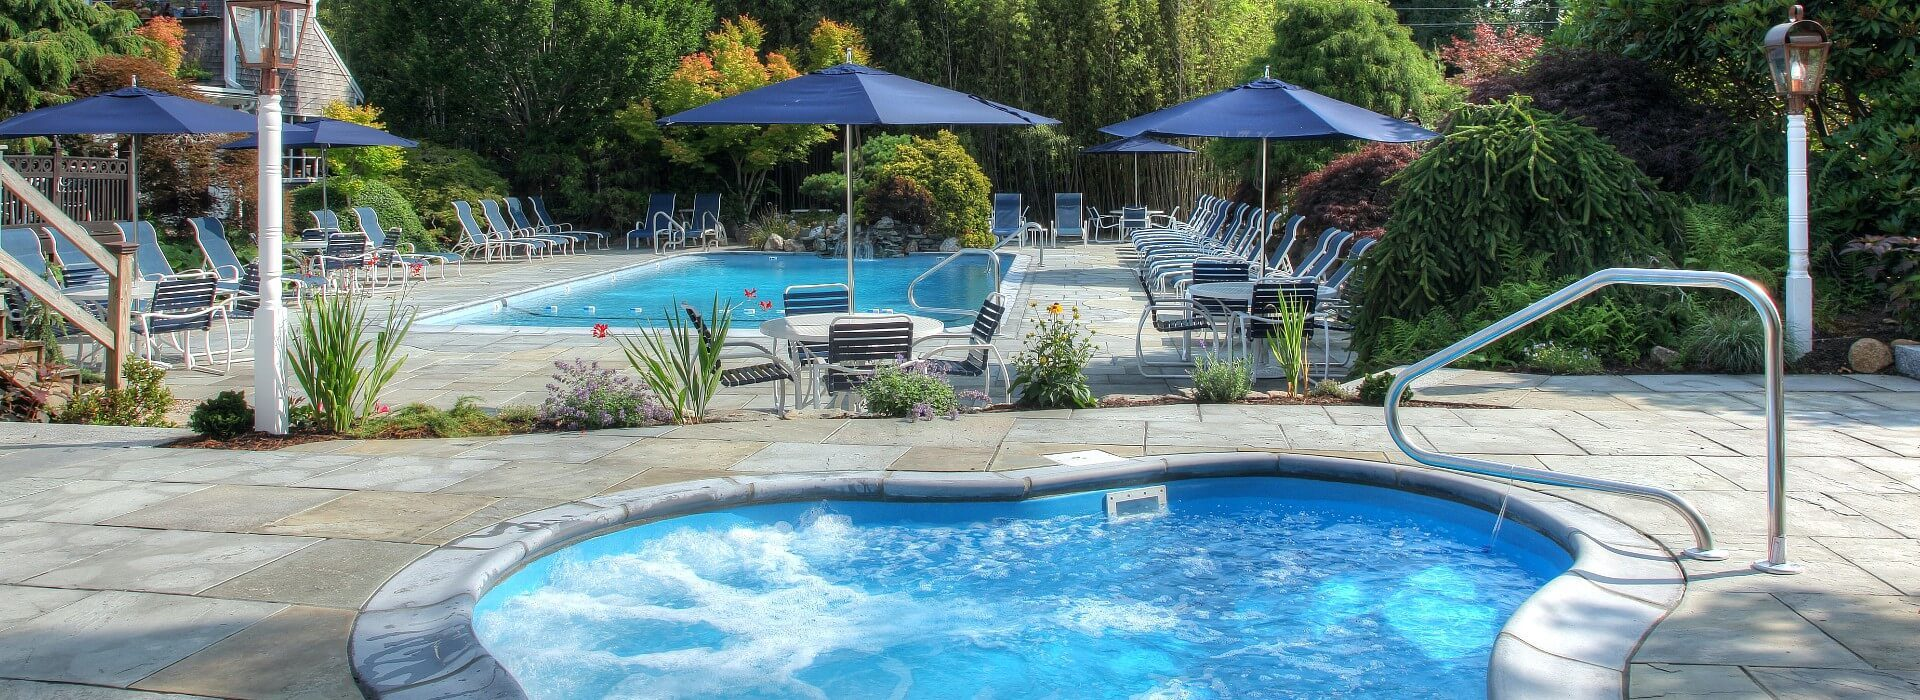 Large outdoor patio with pool lined with sunning chairs, a hot tub with bubbling water and patio tables with blue umbrellas